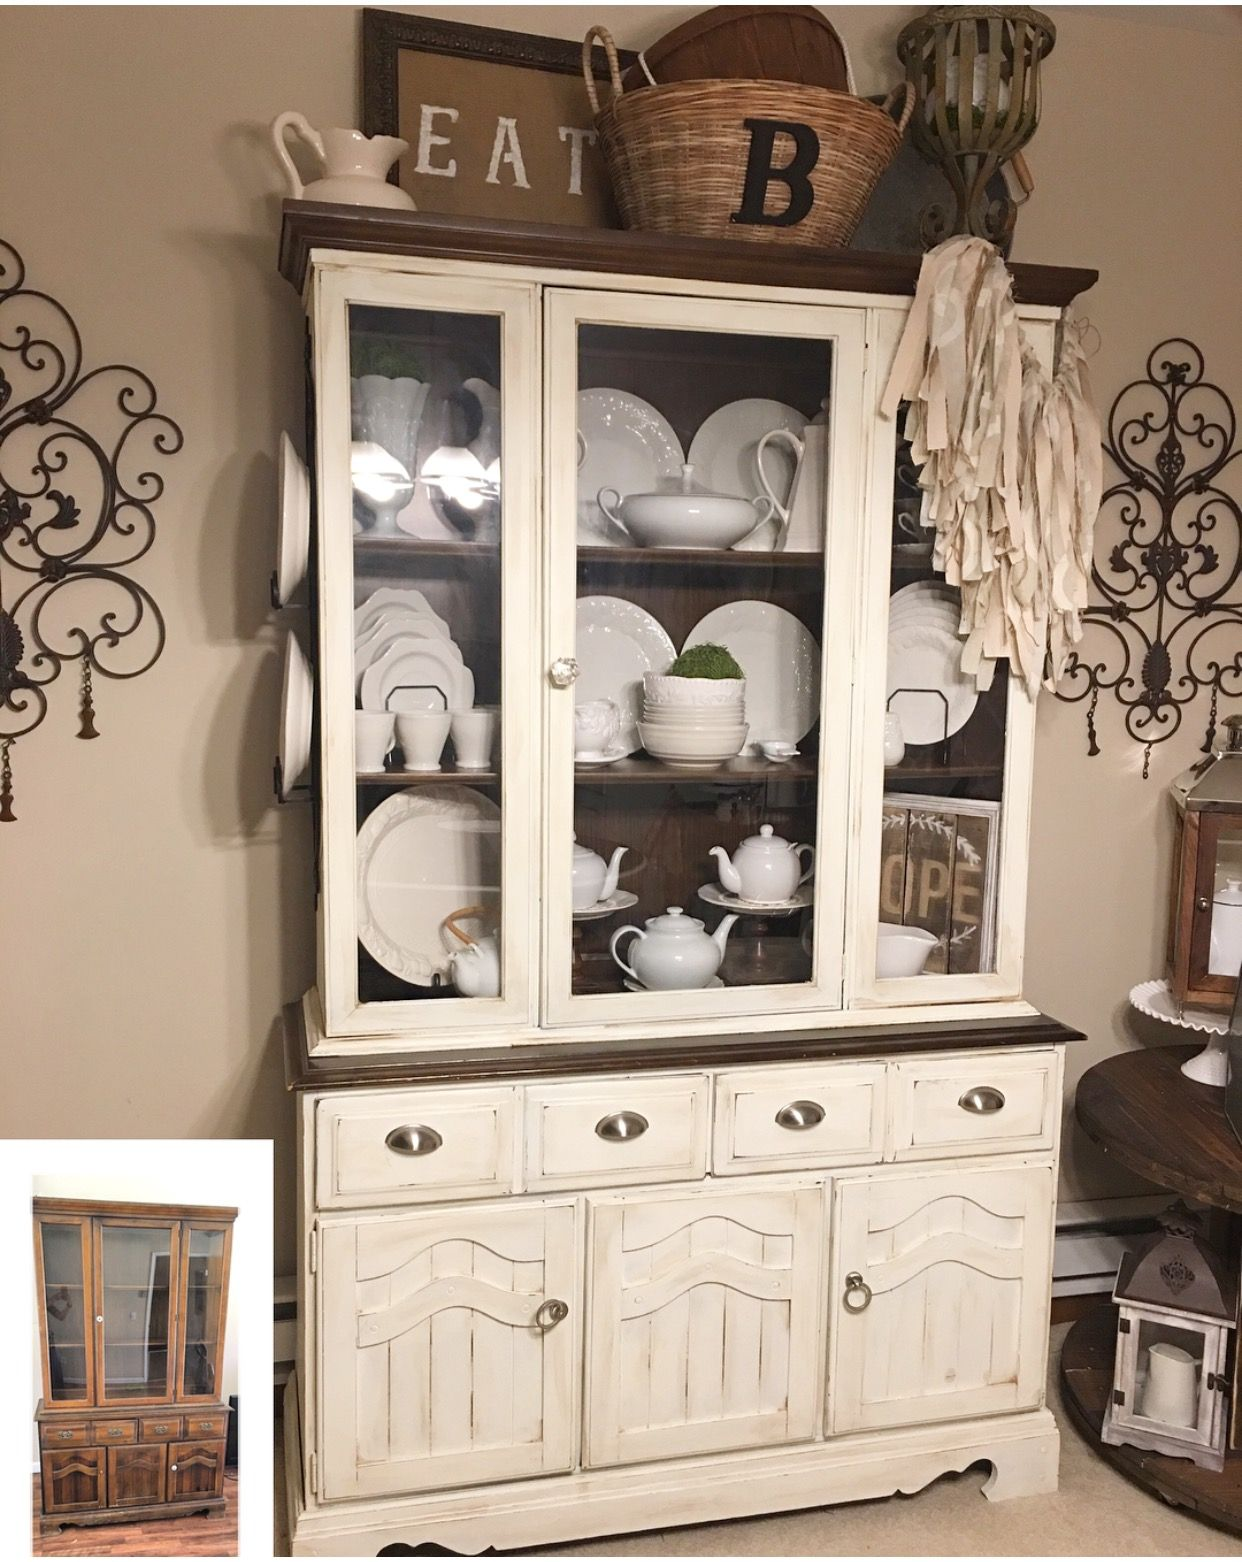 Before And After China Cabinet I Use Valspar Chalk Paint One Thing I Love The Most Is Flipping Antique China Cabinets China Cabinet Decor China Cabinet Redo